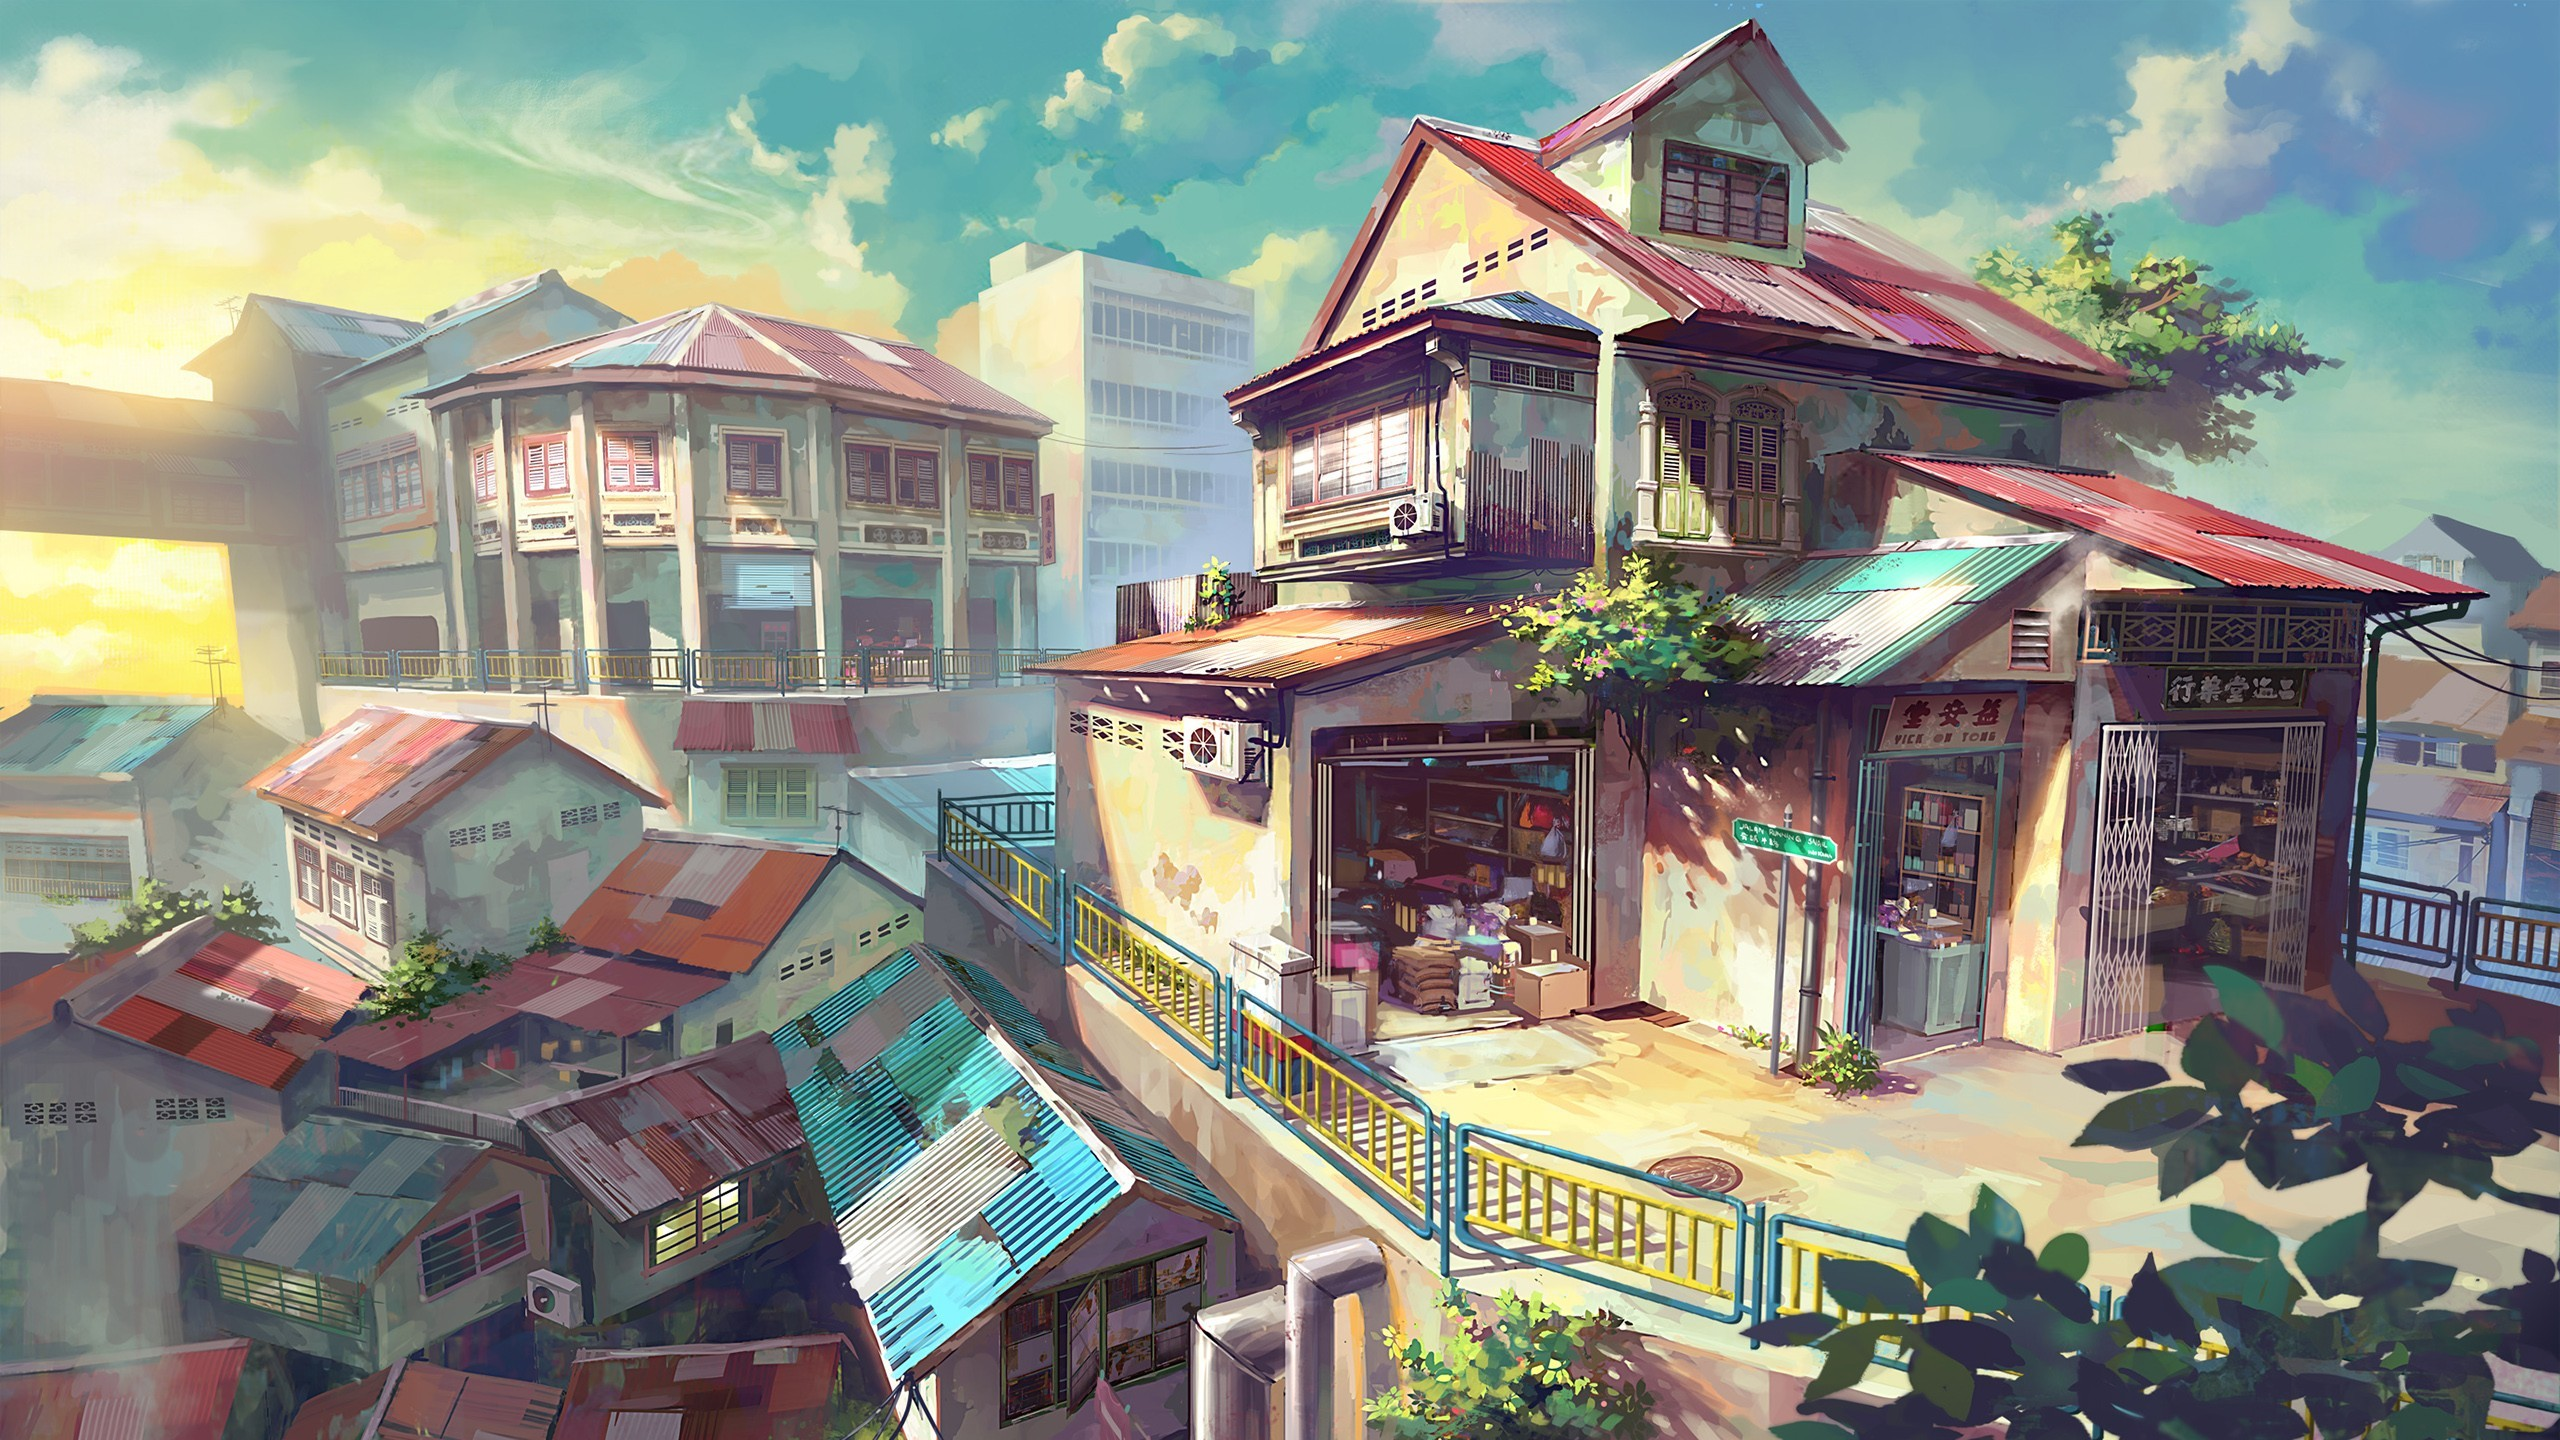 Anime Scenery Wallpapers Background with High Resolution Wallpaper  px 893.29 KB